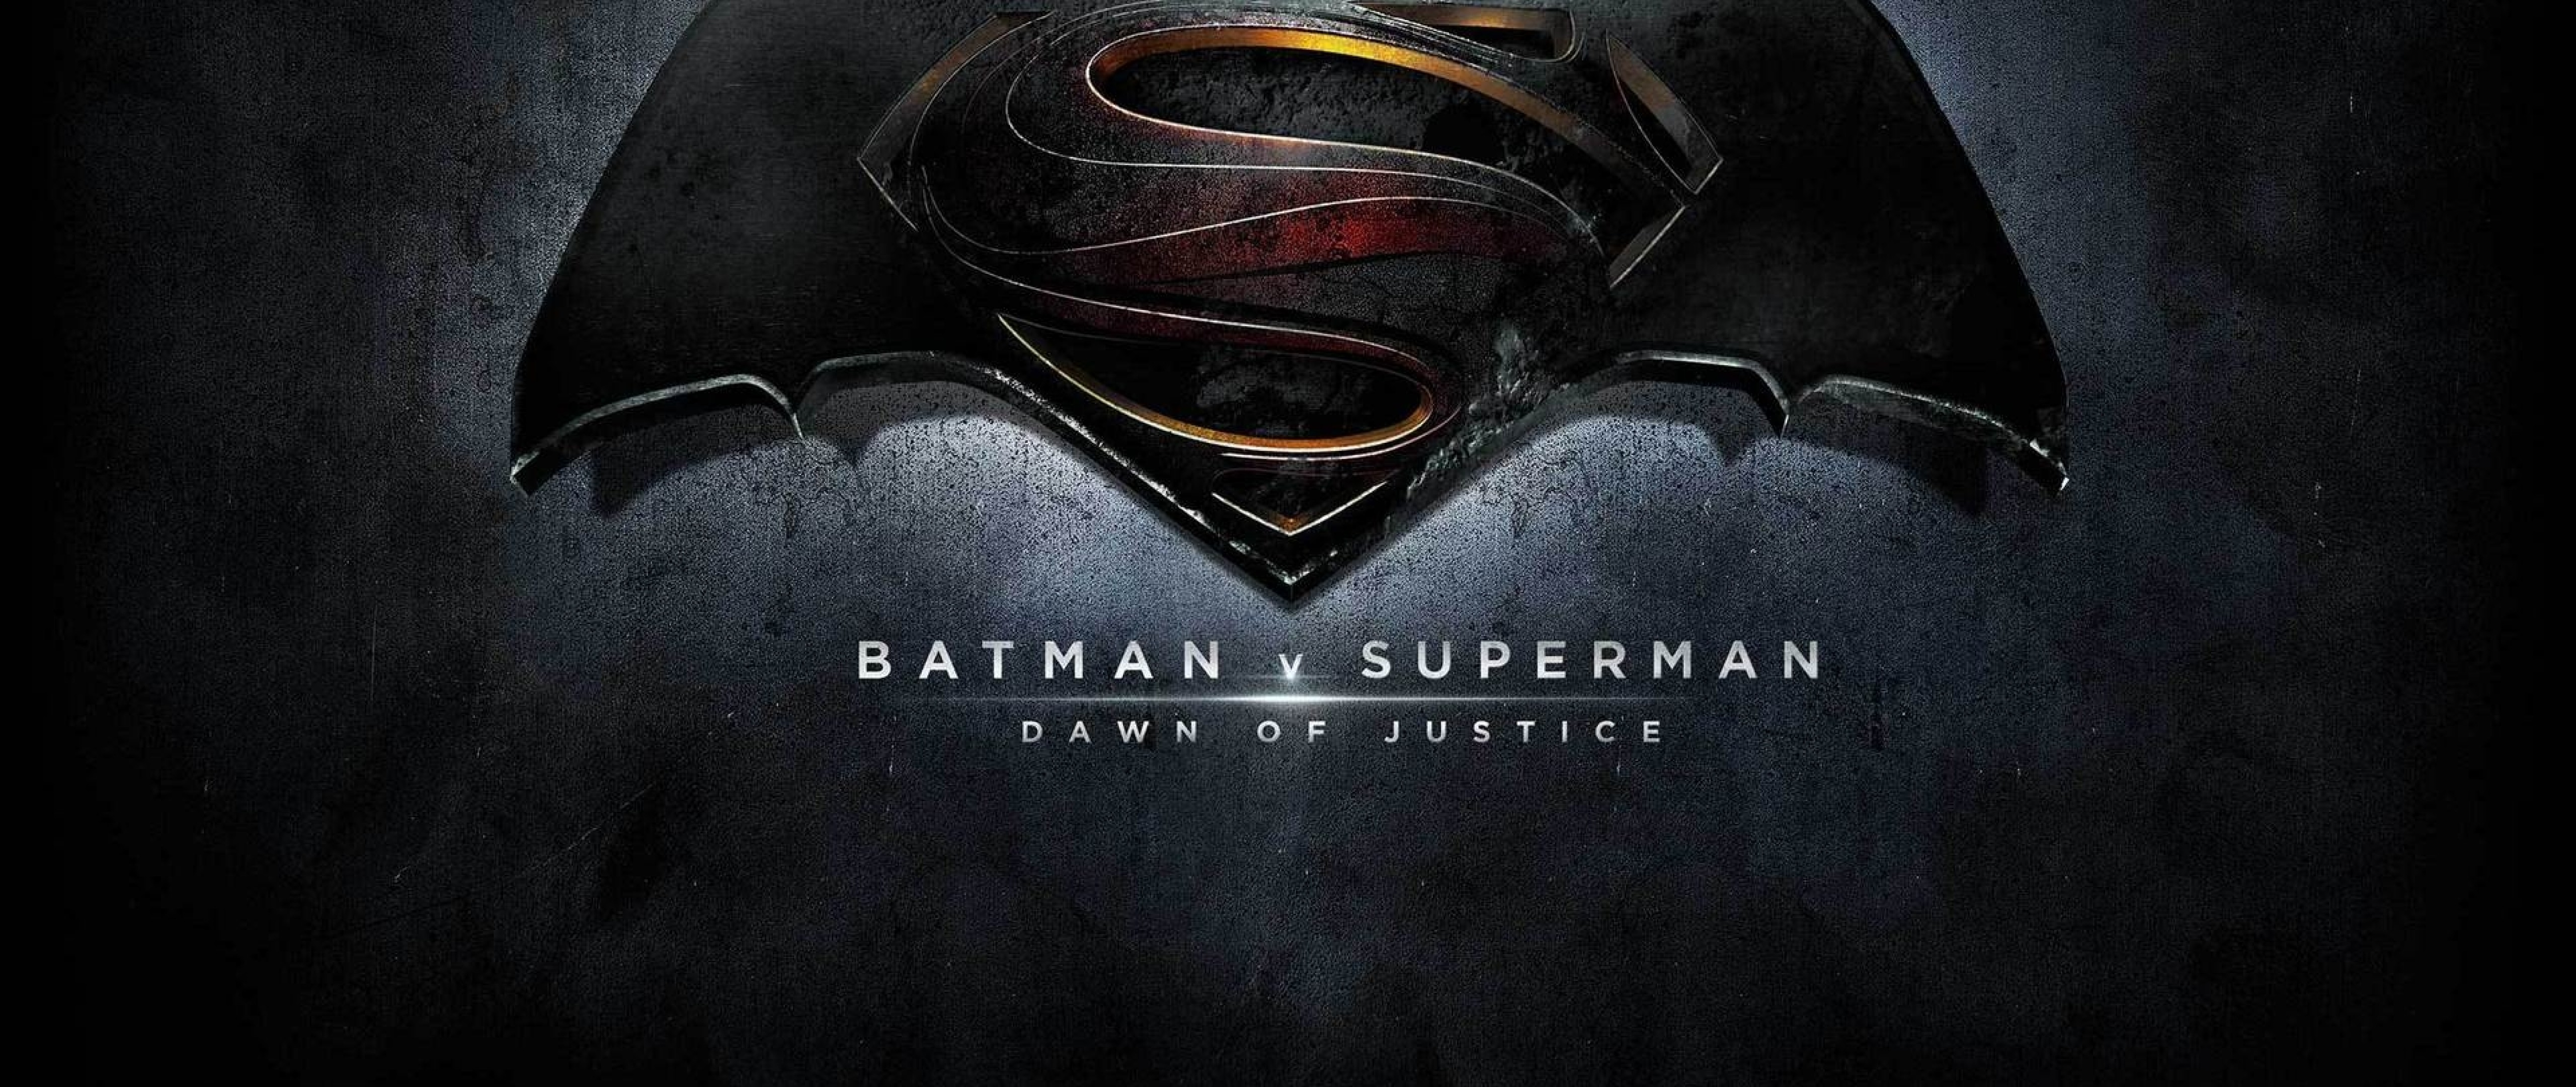 Batman vs Superman Wallpaper for Desktop and Mobiles